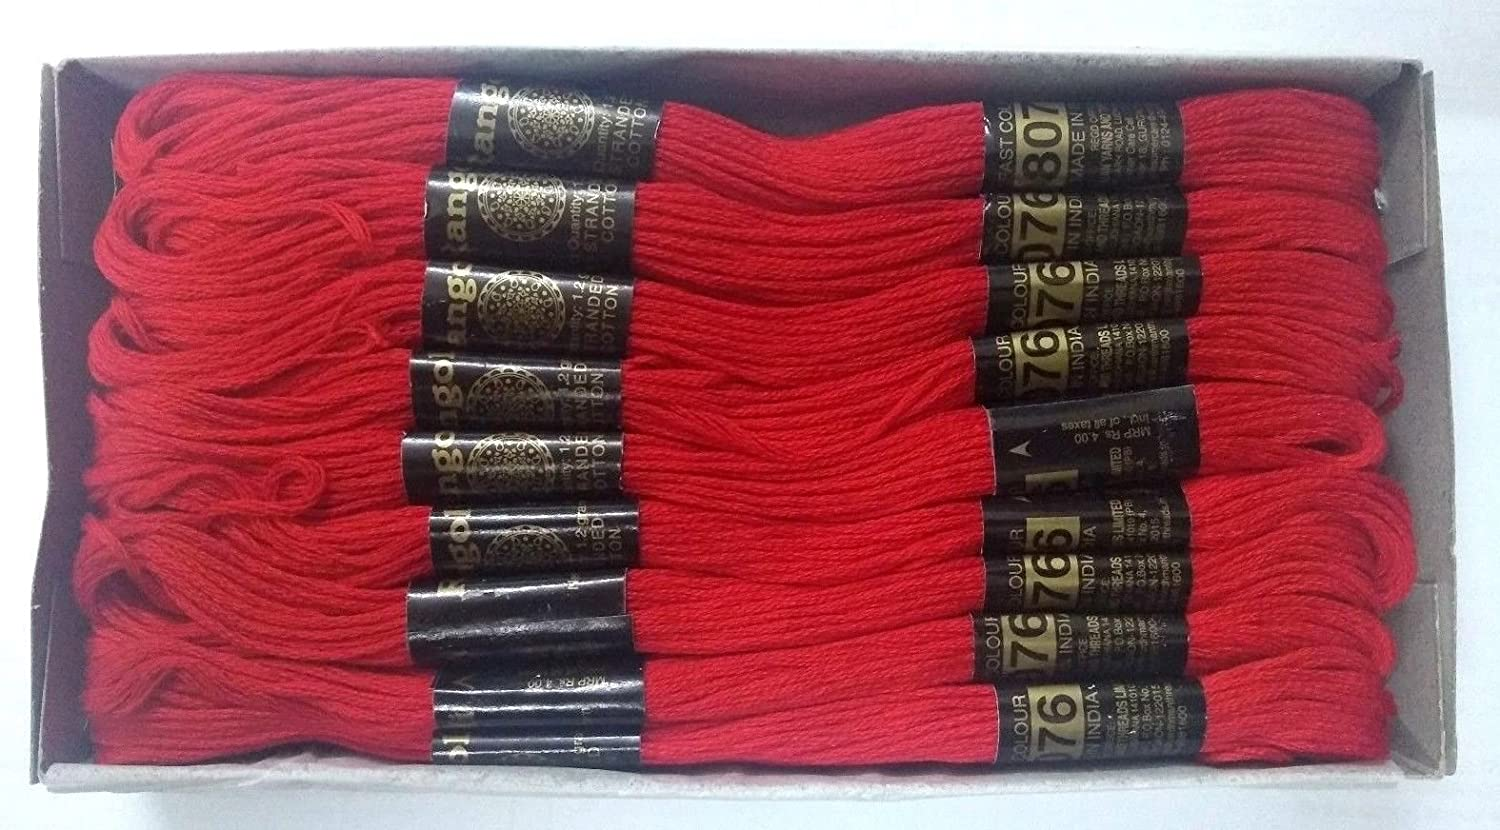 Bright RED - Set Lot of Cotton 6 Ply Strand Thread Yarn Skeins Cross Stitch Embroidery Floss (Set of 20 Skeins) Desi Hawker